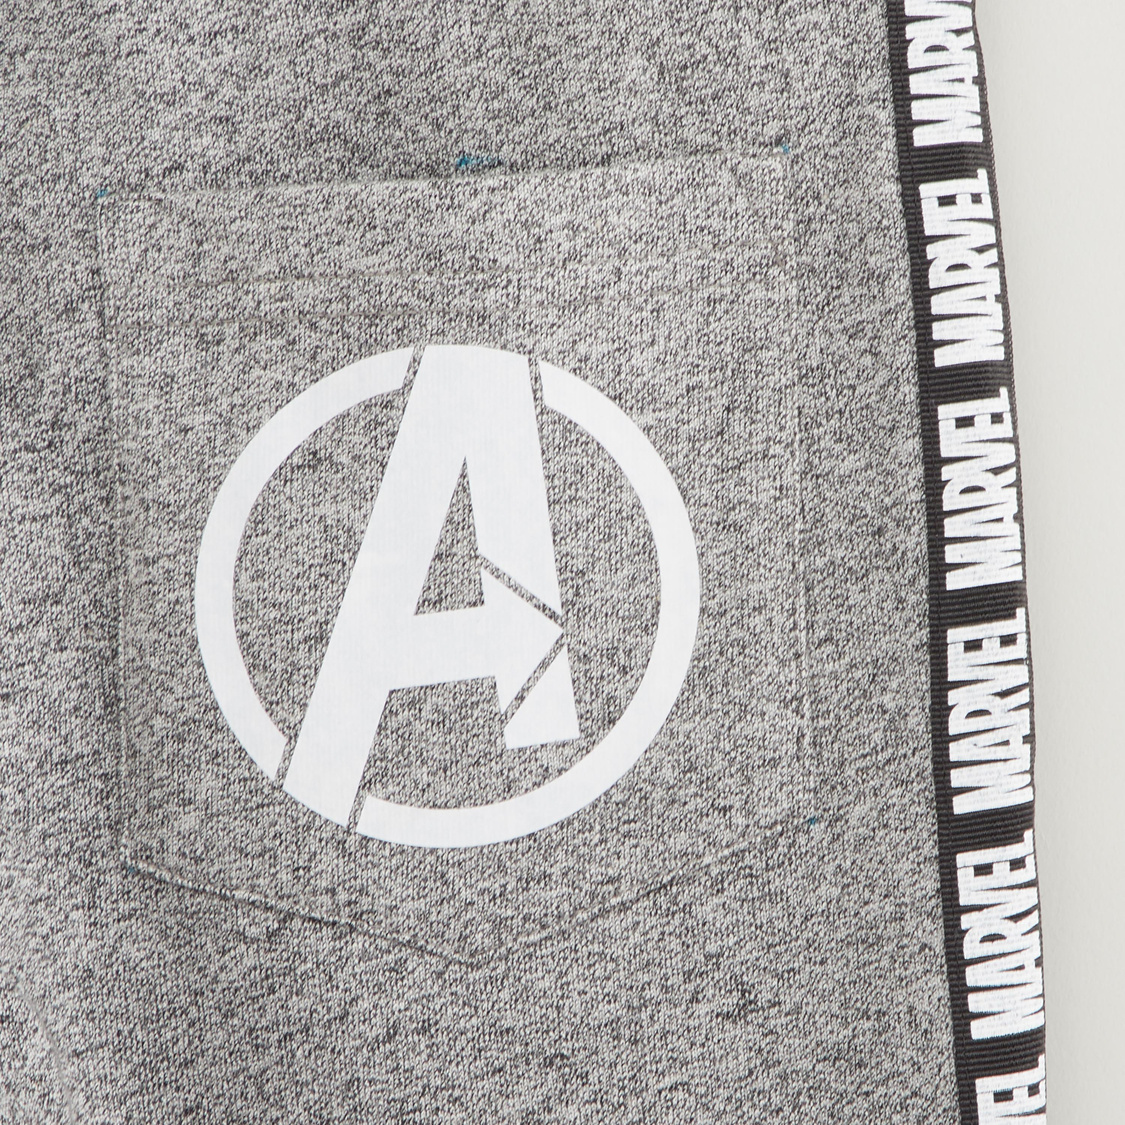 Avengers Print Jog Pants with Pocket Detail and Elasticised Waistband